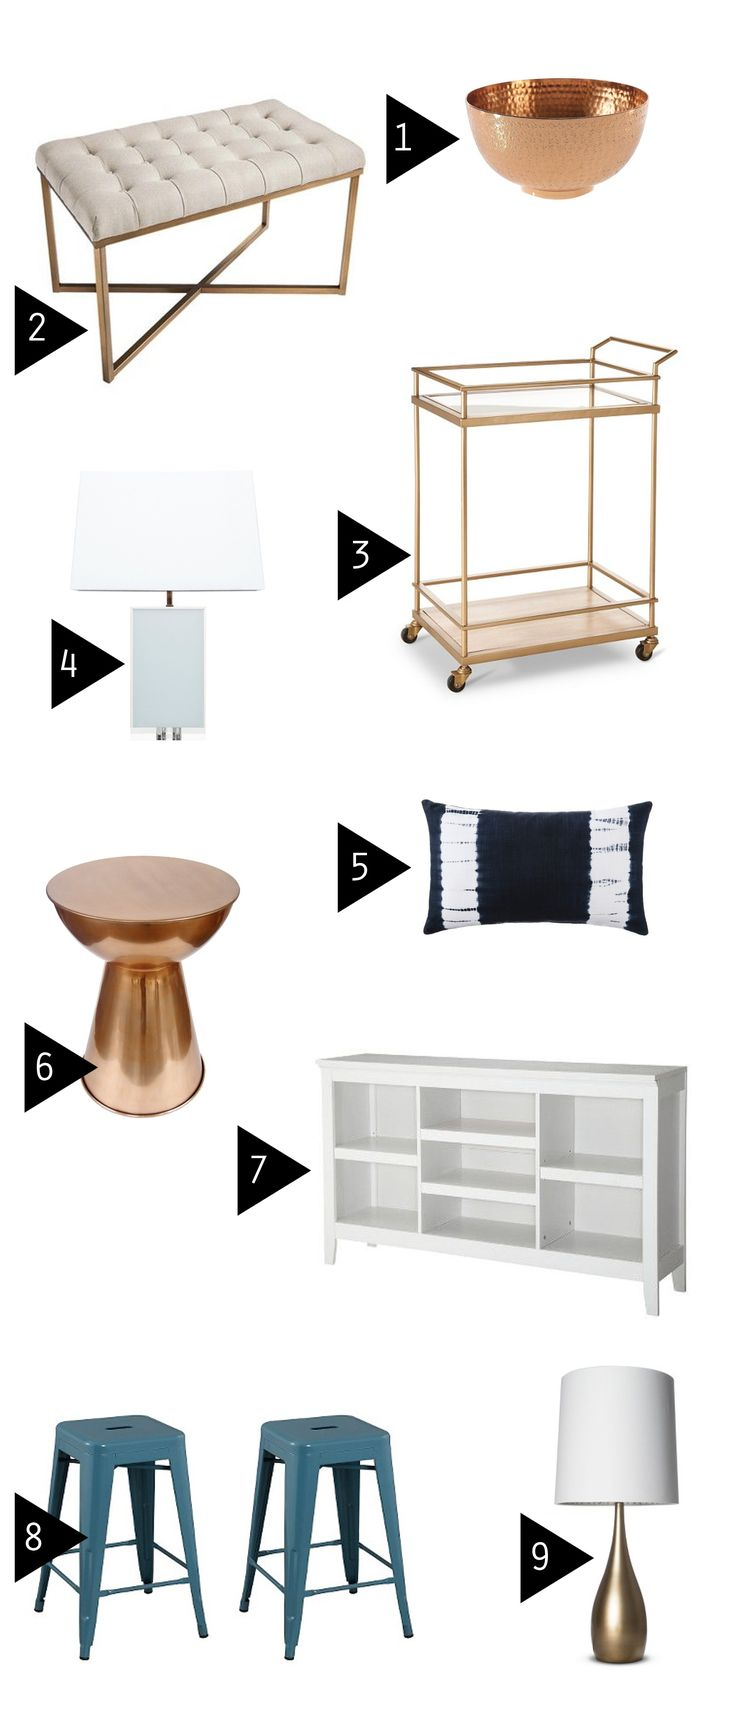 Favorite sources for affordable home decor: Target